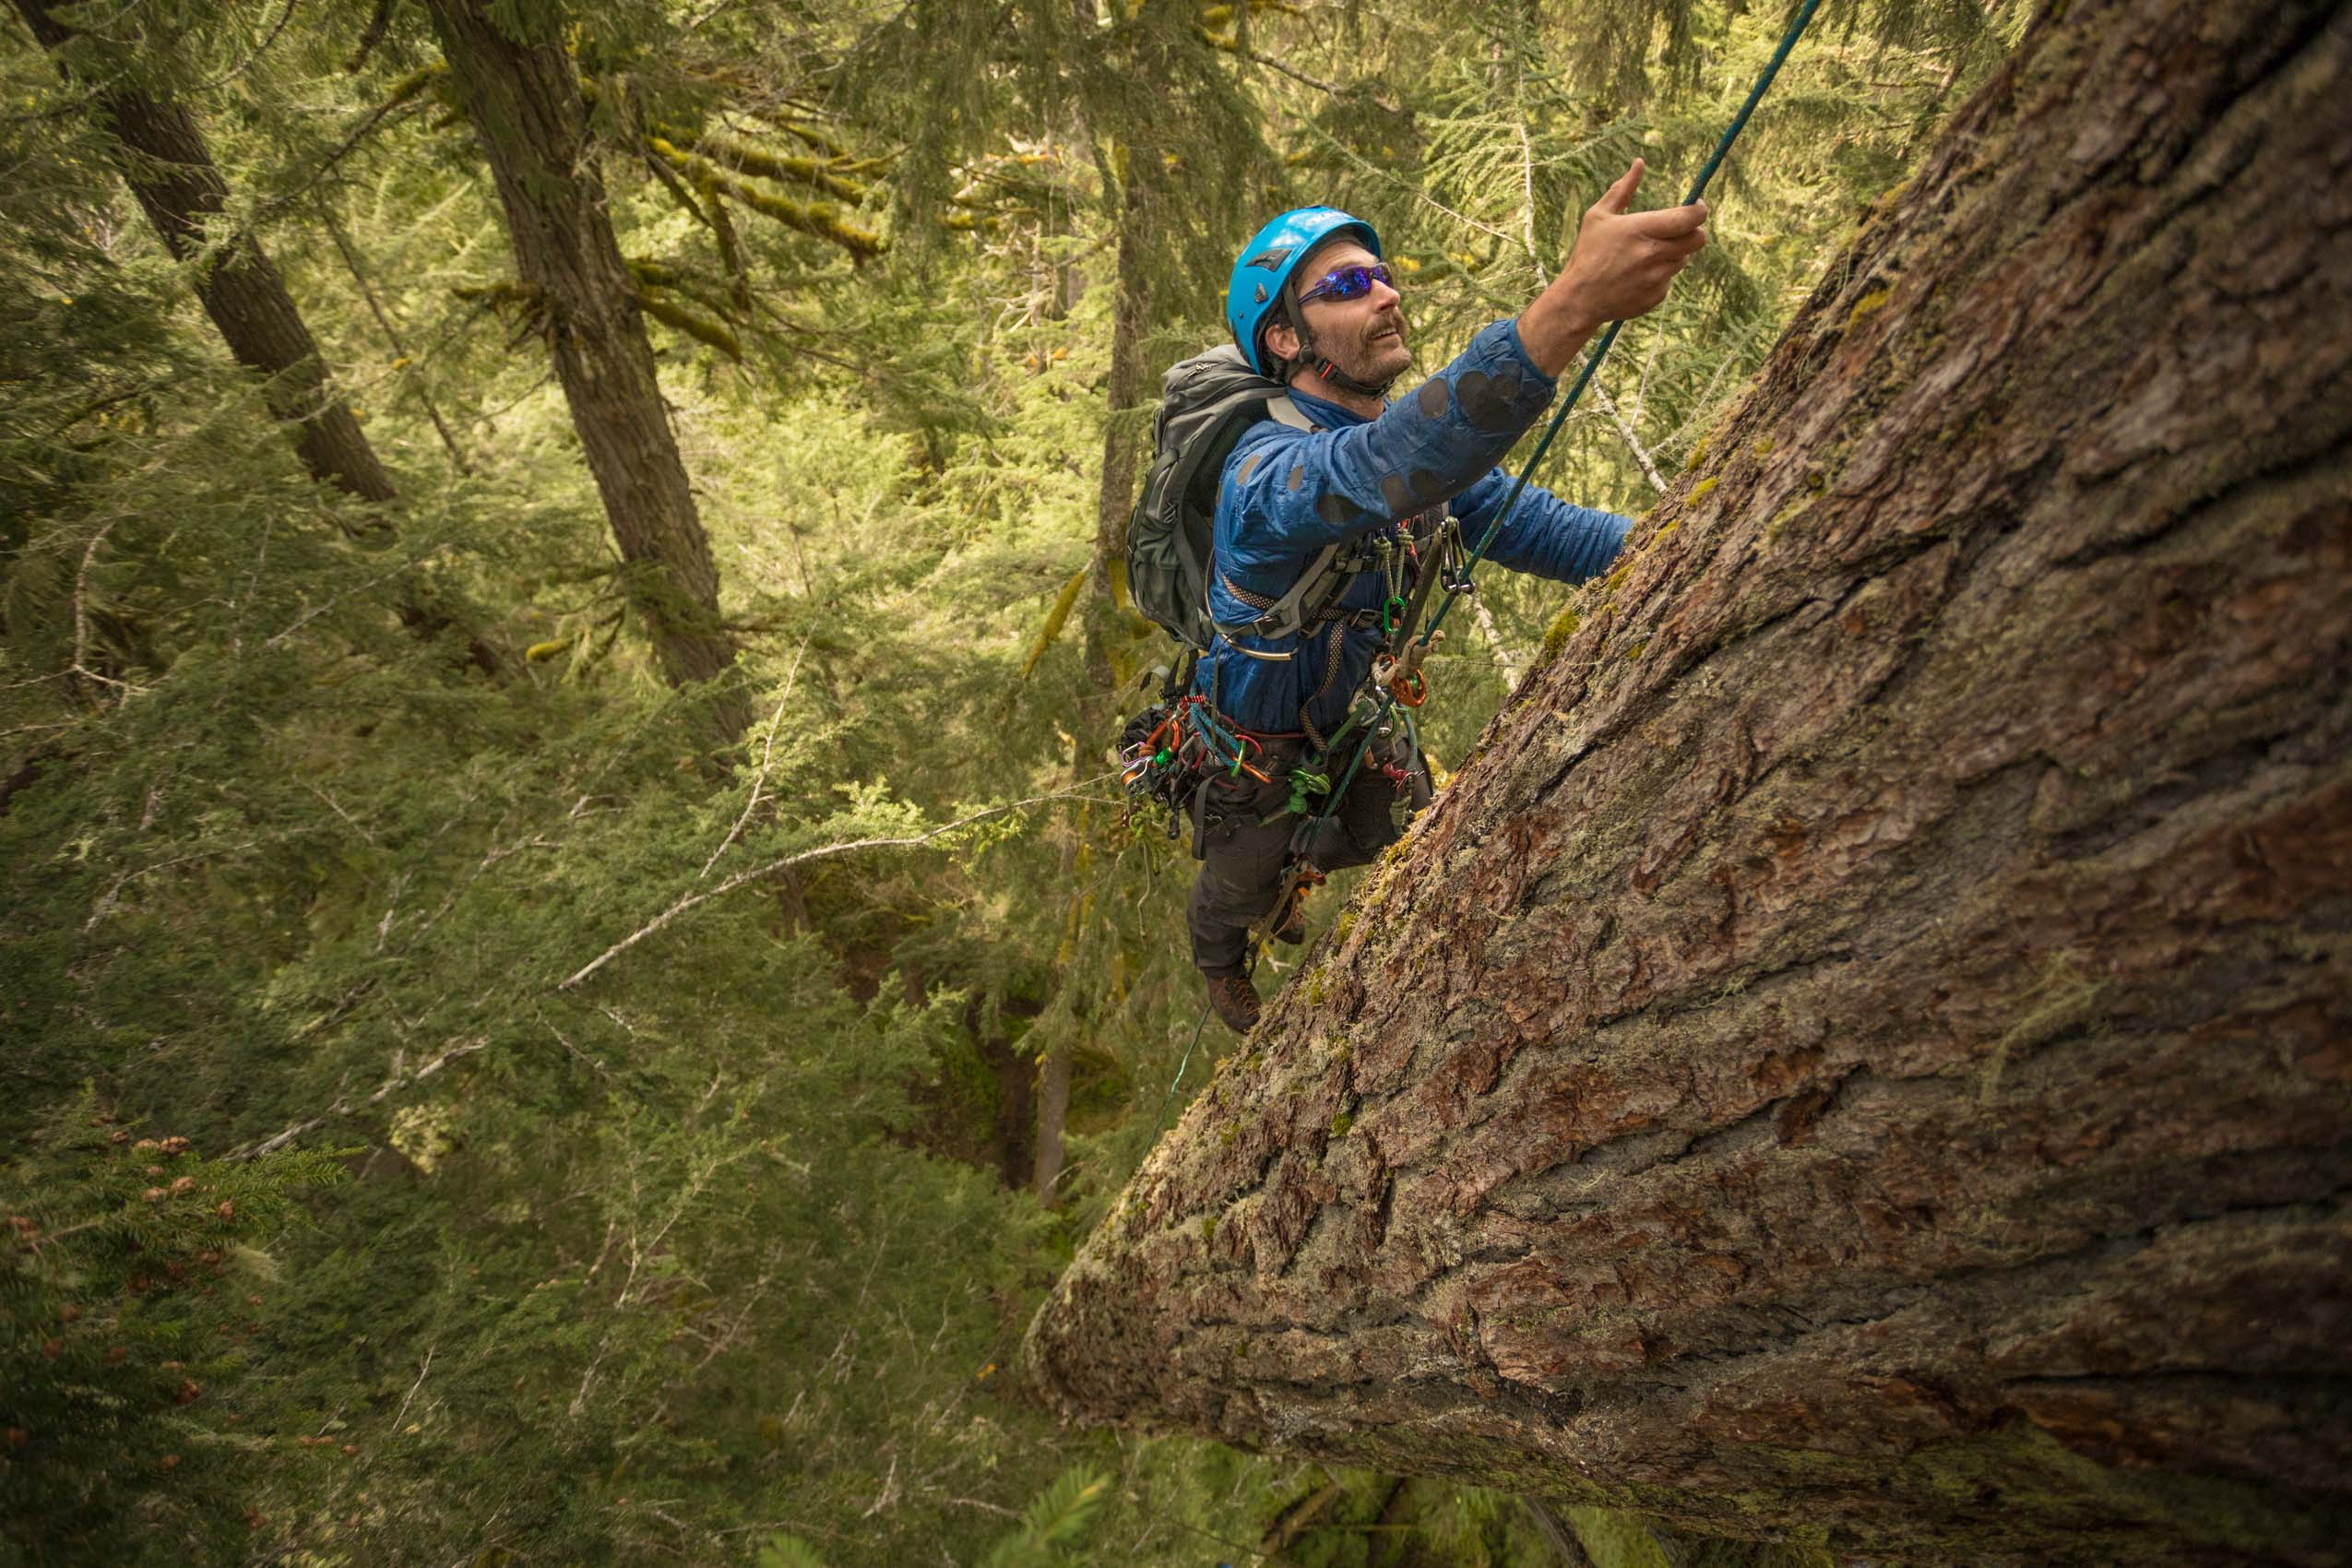 arborist climbing old growth adventure photographer Rich Crowder